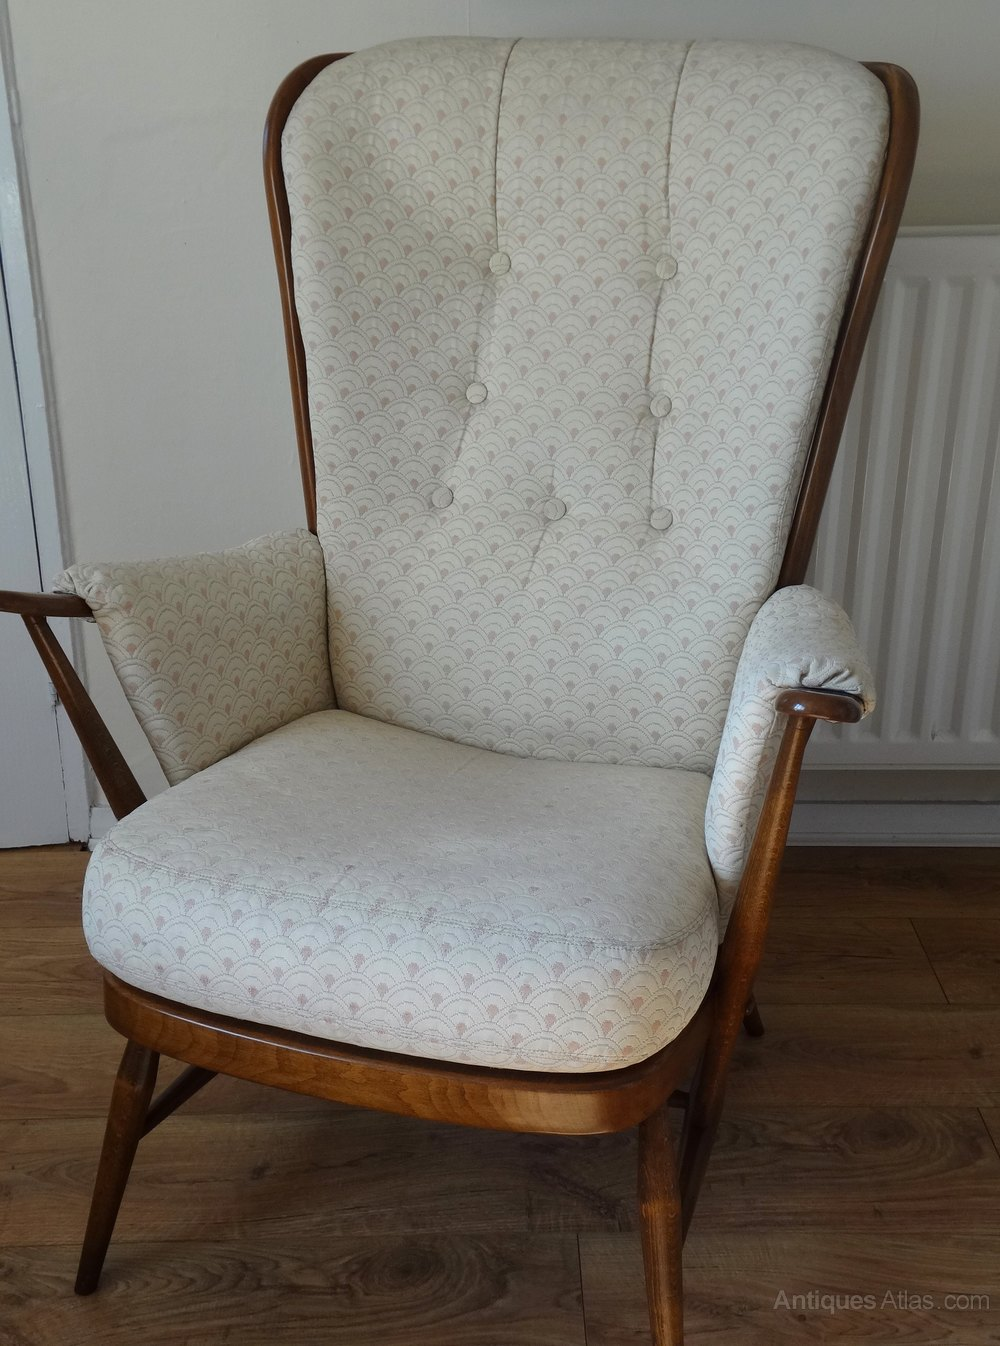 Antiques Atlas - Ercol Evergreen Armchair